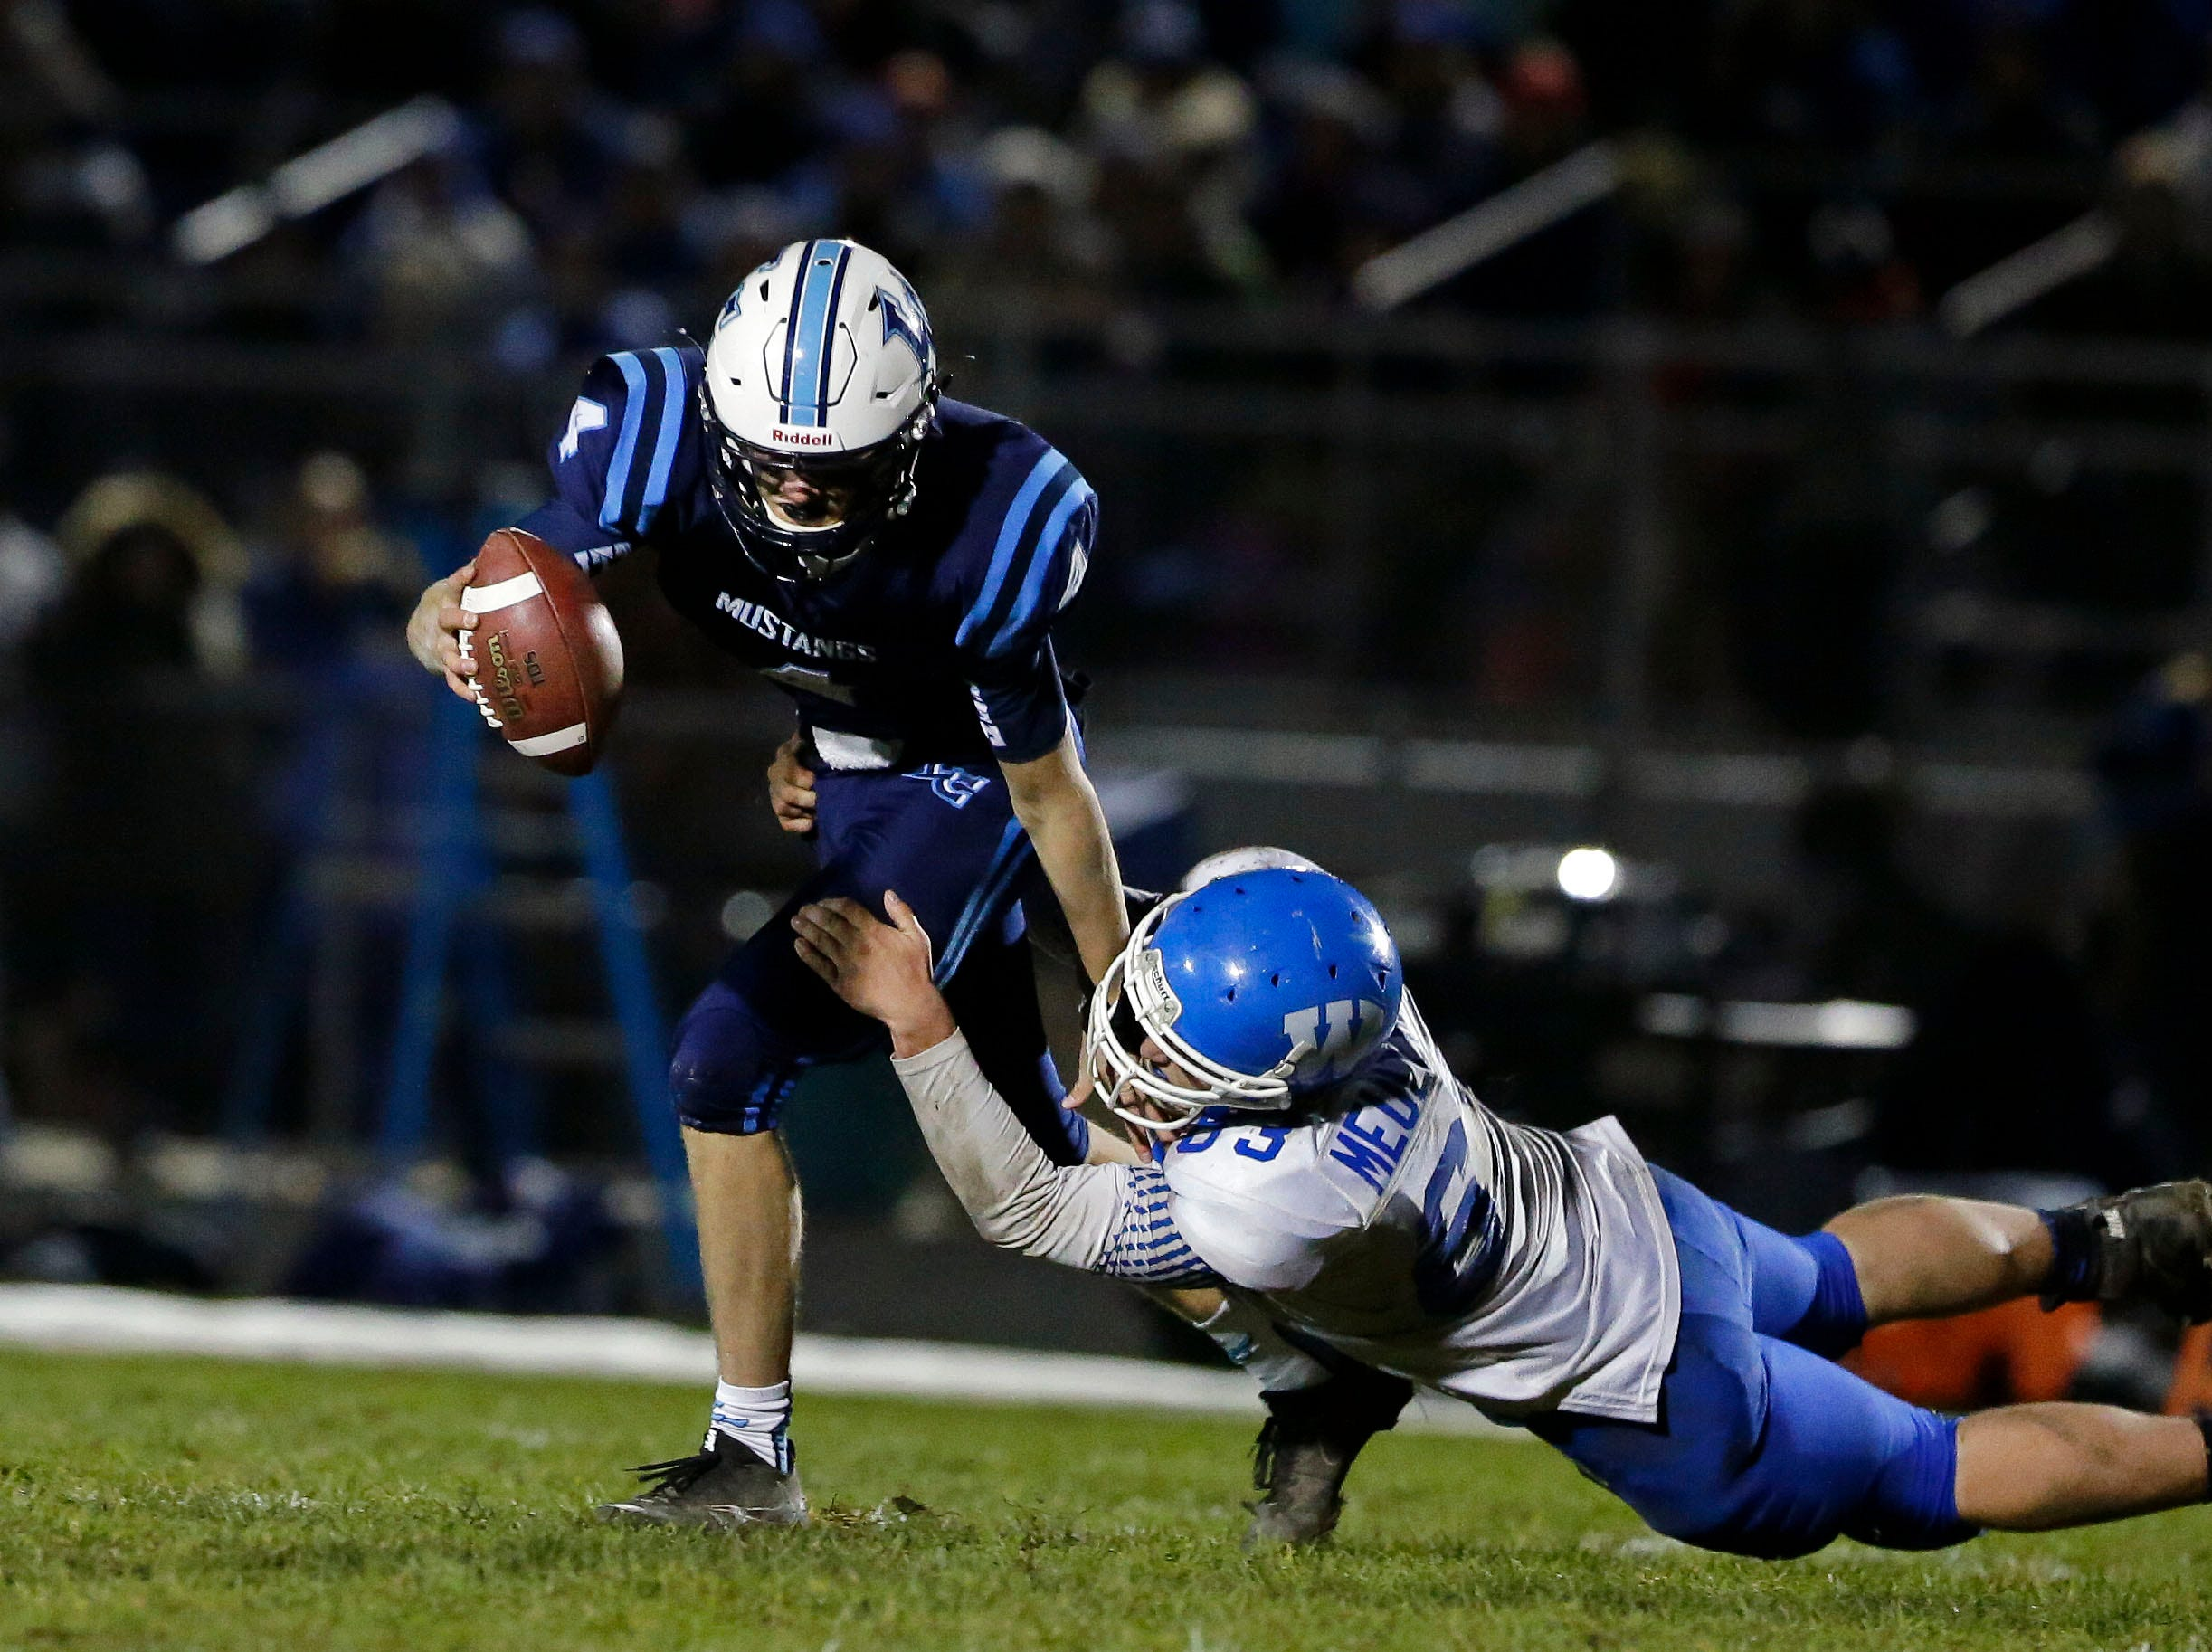 Noah Mueller of Little Chute is sacked by Hayden Meulemans of Wrightstown in a WIAA Division 4 Level 3 playoff game Friday, November 2, 2018, at Fitzpatrick Field in Little Chute, Wis.Ron Page/USA TODAY NETWORK-Wisconsin